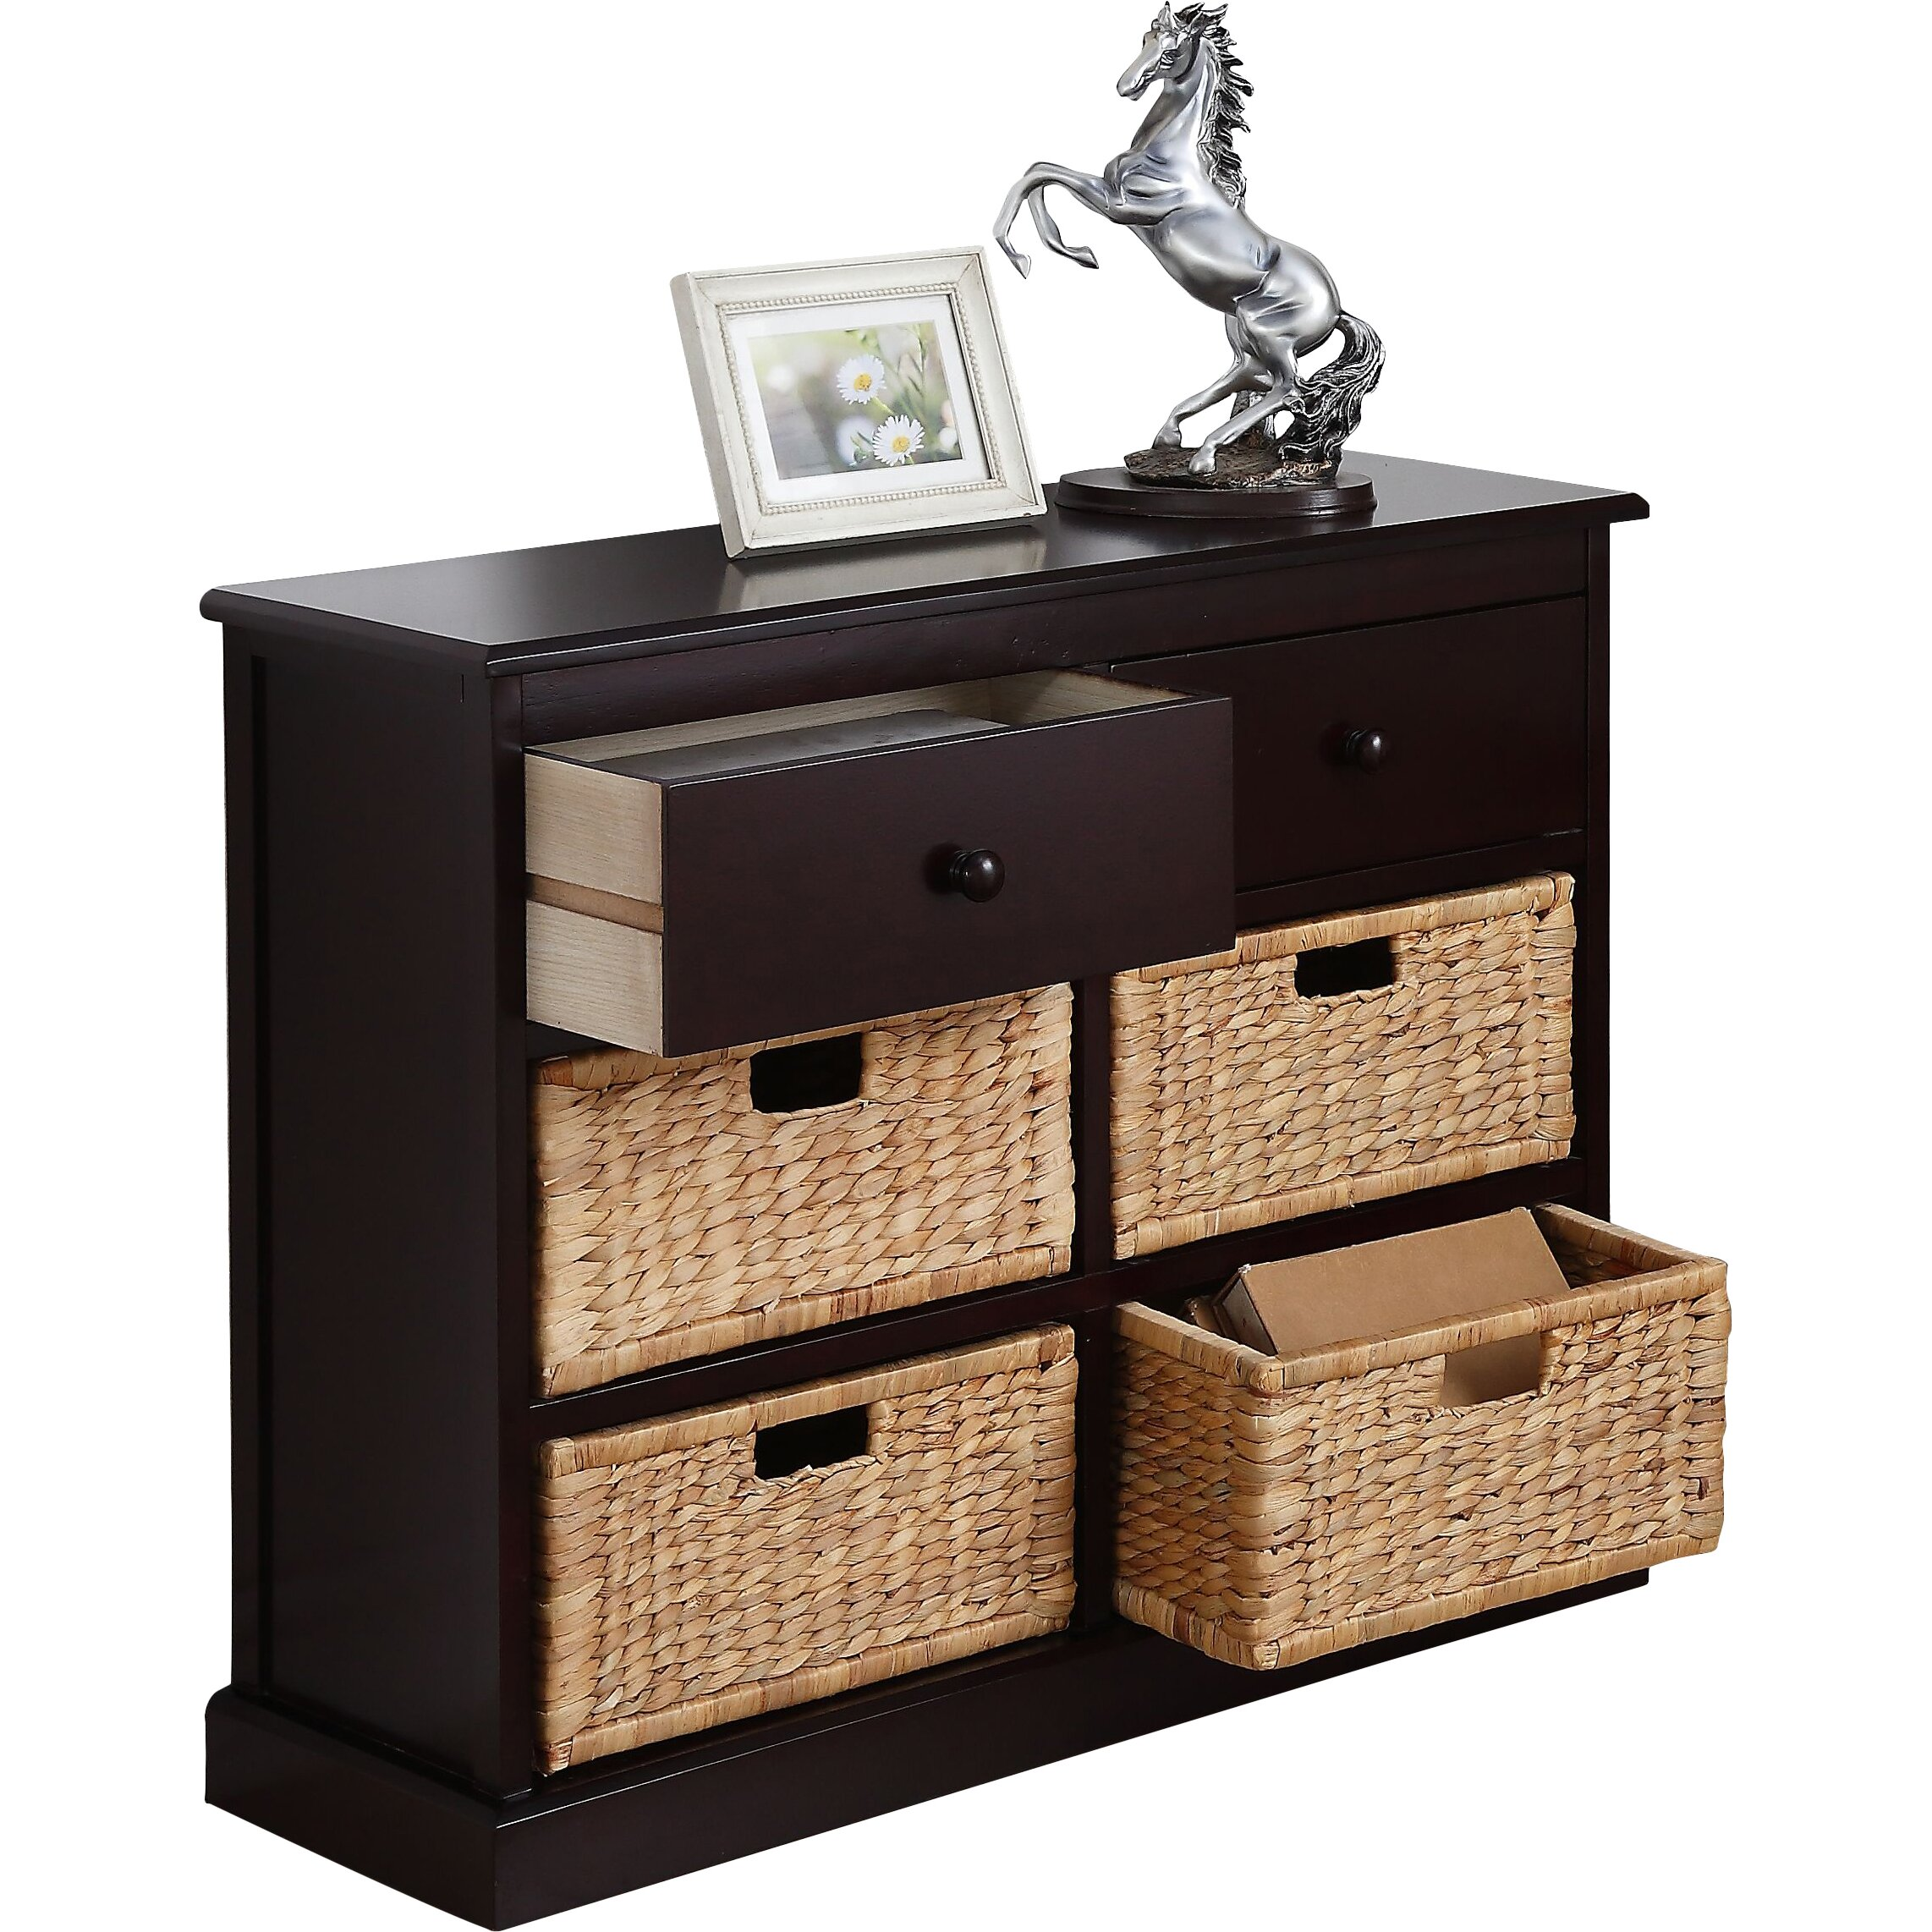 Charlton home carter 2 drawer 4 basket storage chest for Storage charlton